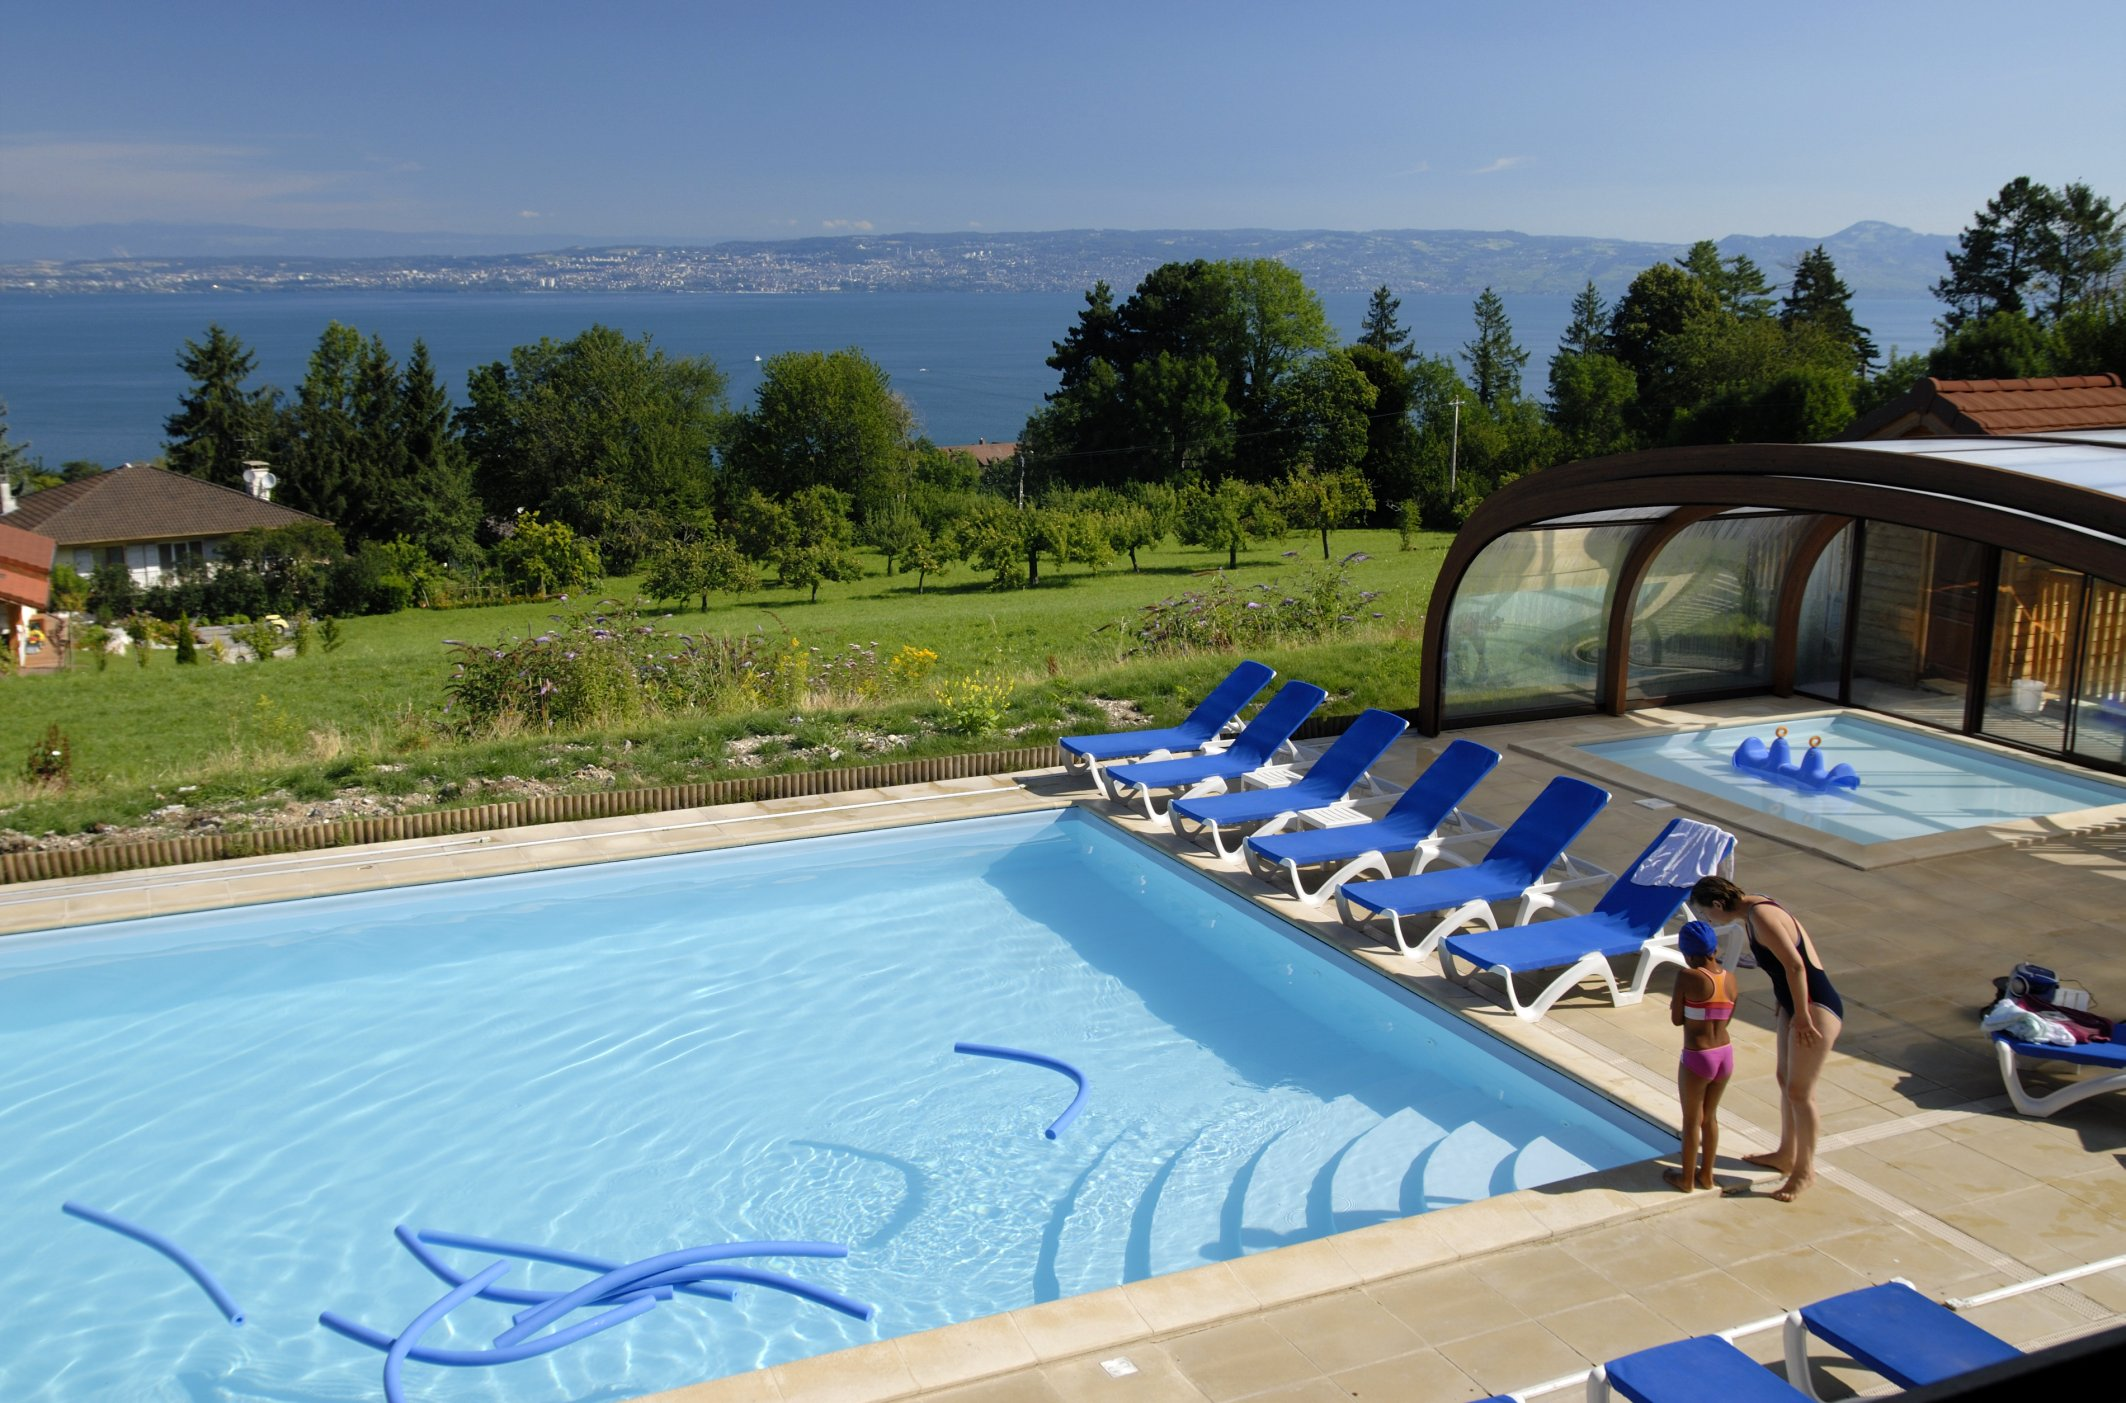 Les Chalets d Evian (Evian) Outdoor Pool